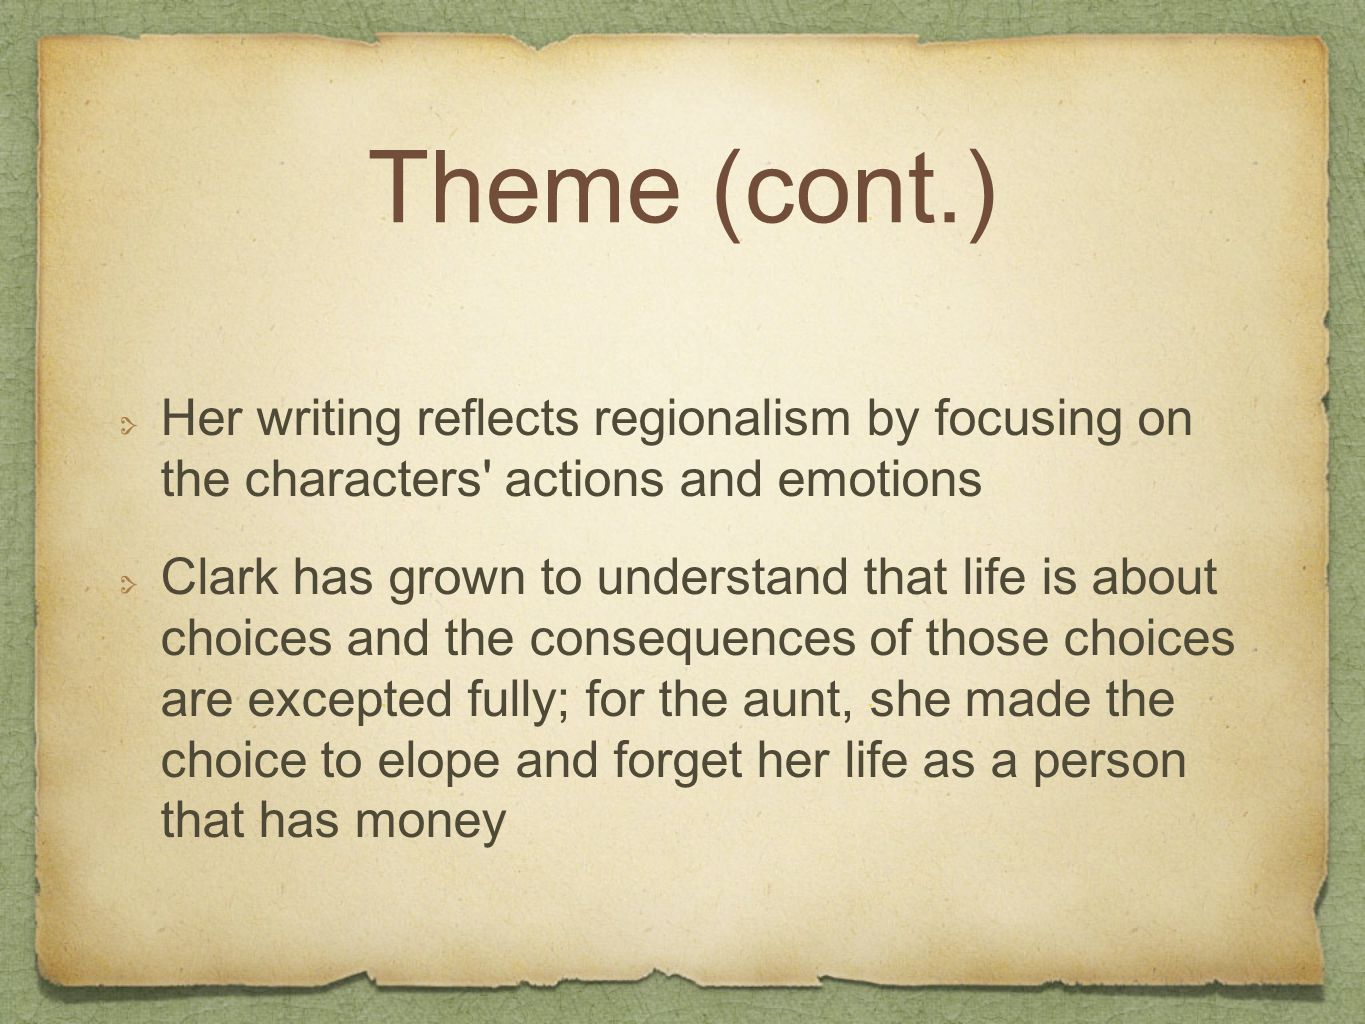 Theme (cont.) Her writing reflects regionalism by focusing on the characters actions and emotions Clark has grown to understand that life is about choices and the consequences of those choices are excepted fully; for the aunt, she made the choice to elope and forget her life as a person that has money